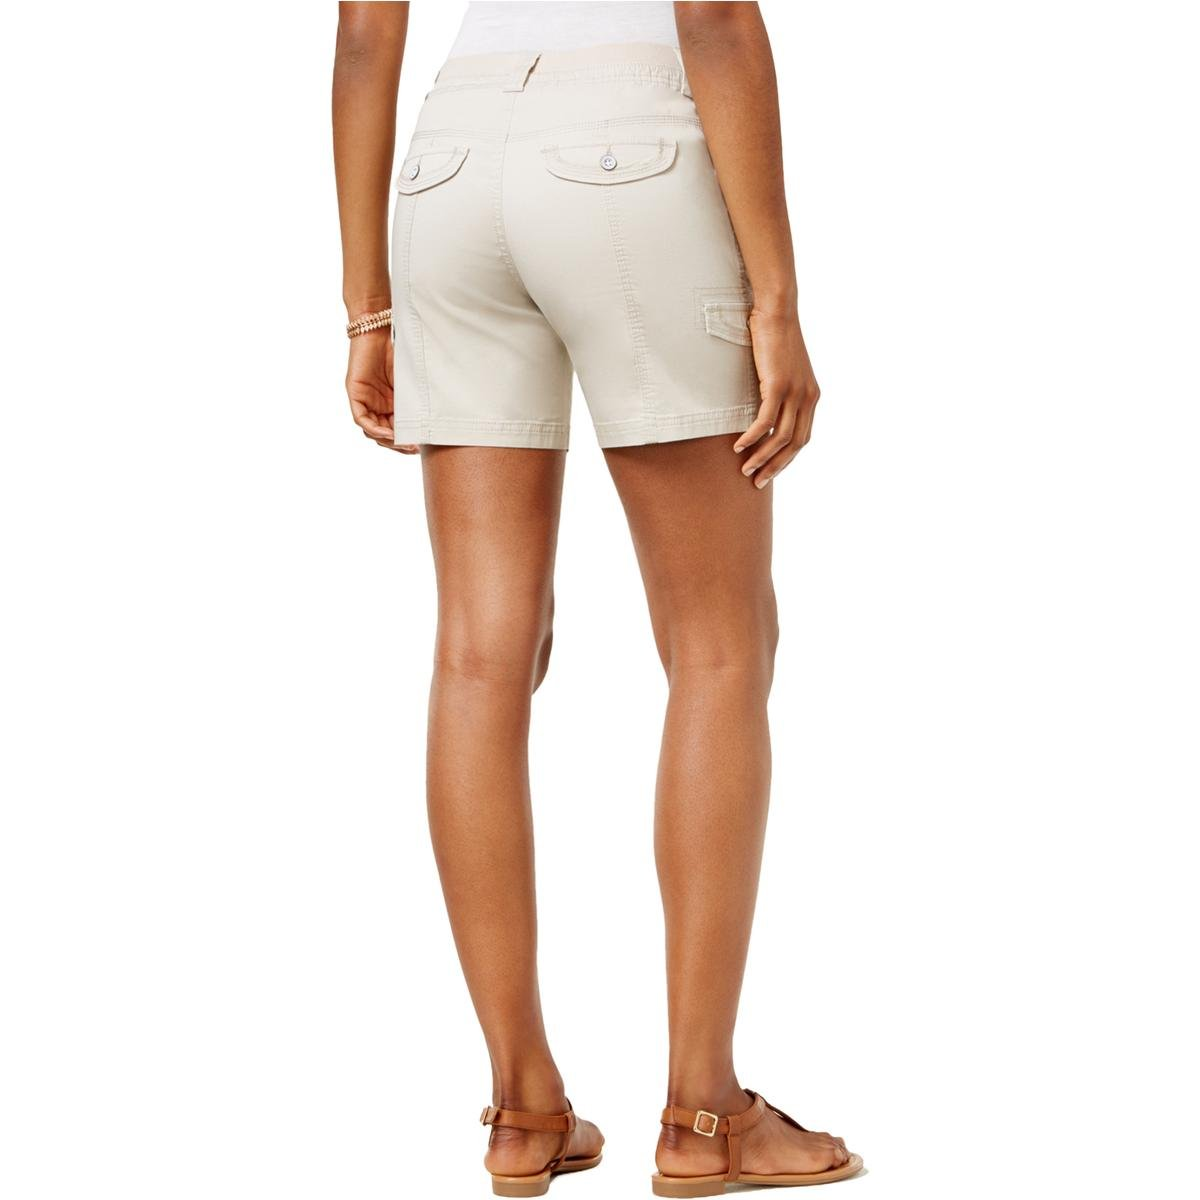 Style & Co.. Womens Petites Mid-Rise Comfort Waist Cargo Shorts Tan 12P by Style & Co. (Image #2)